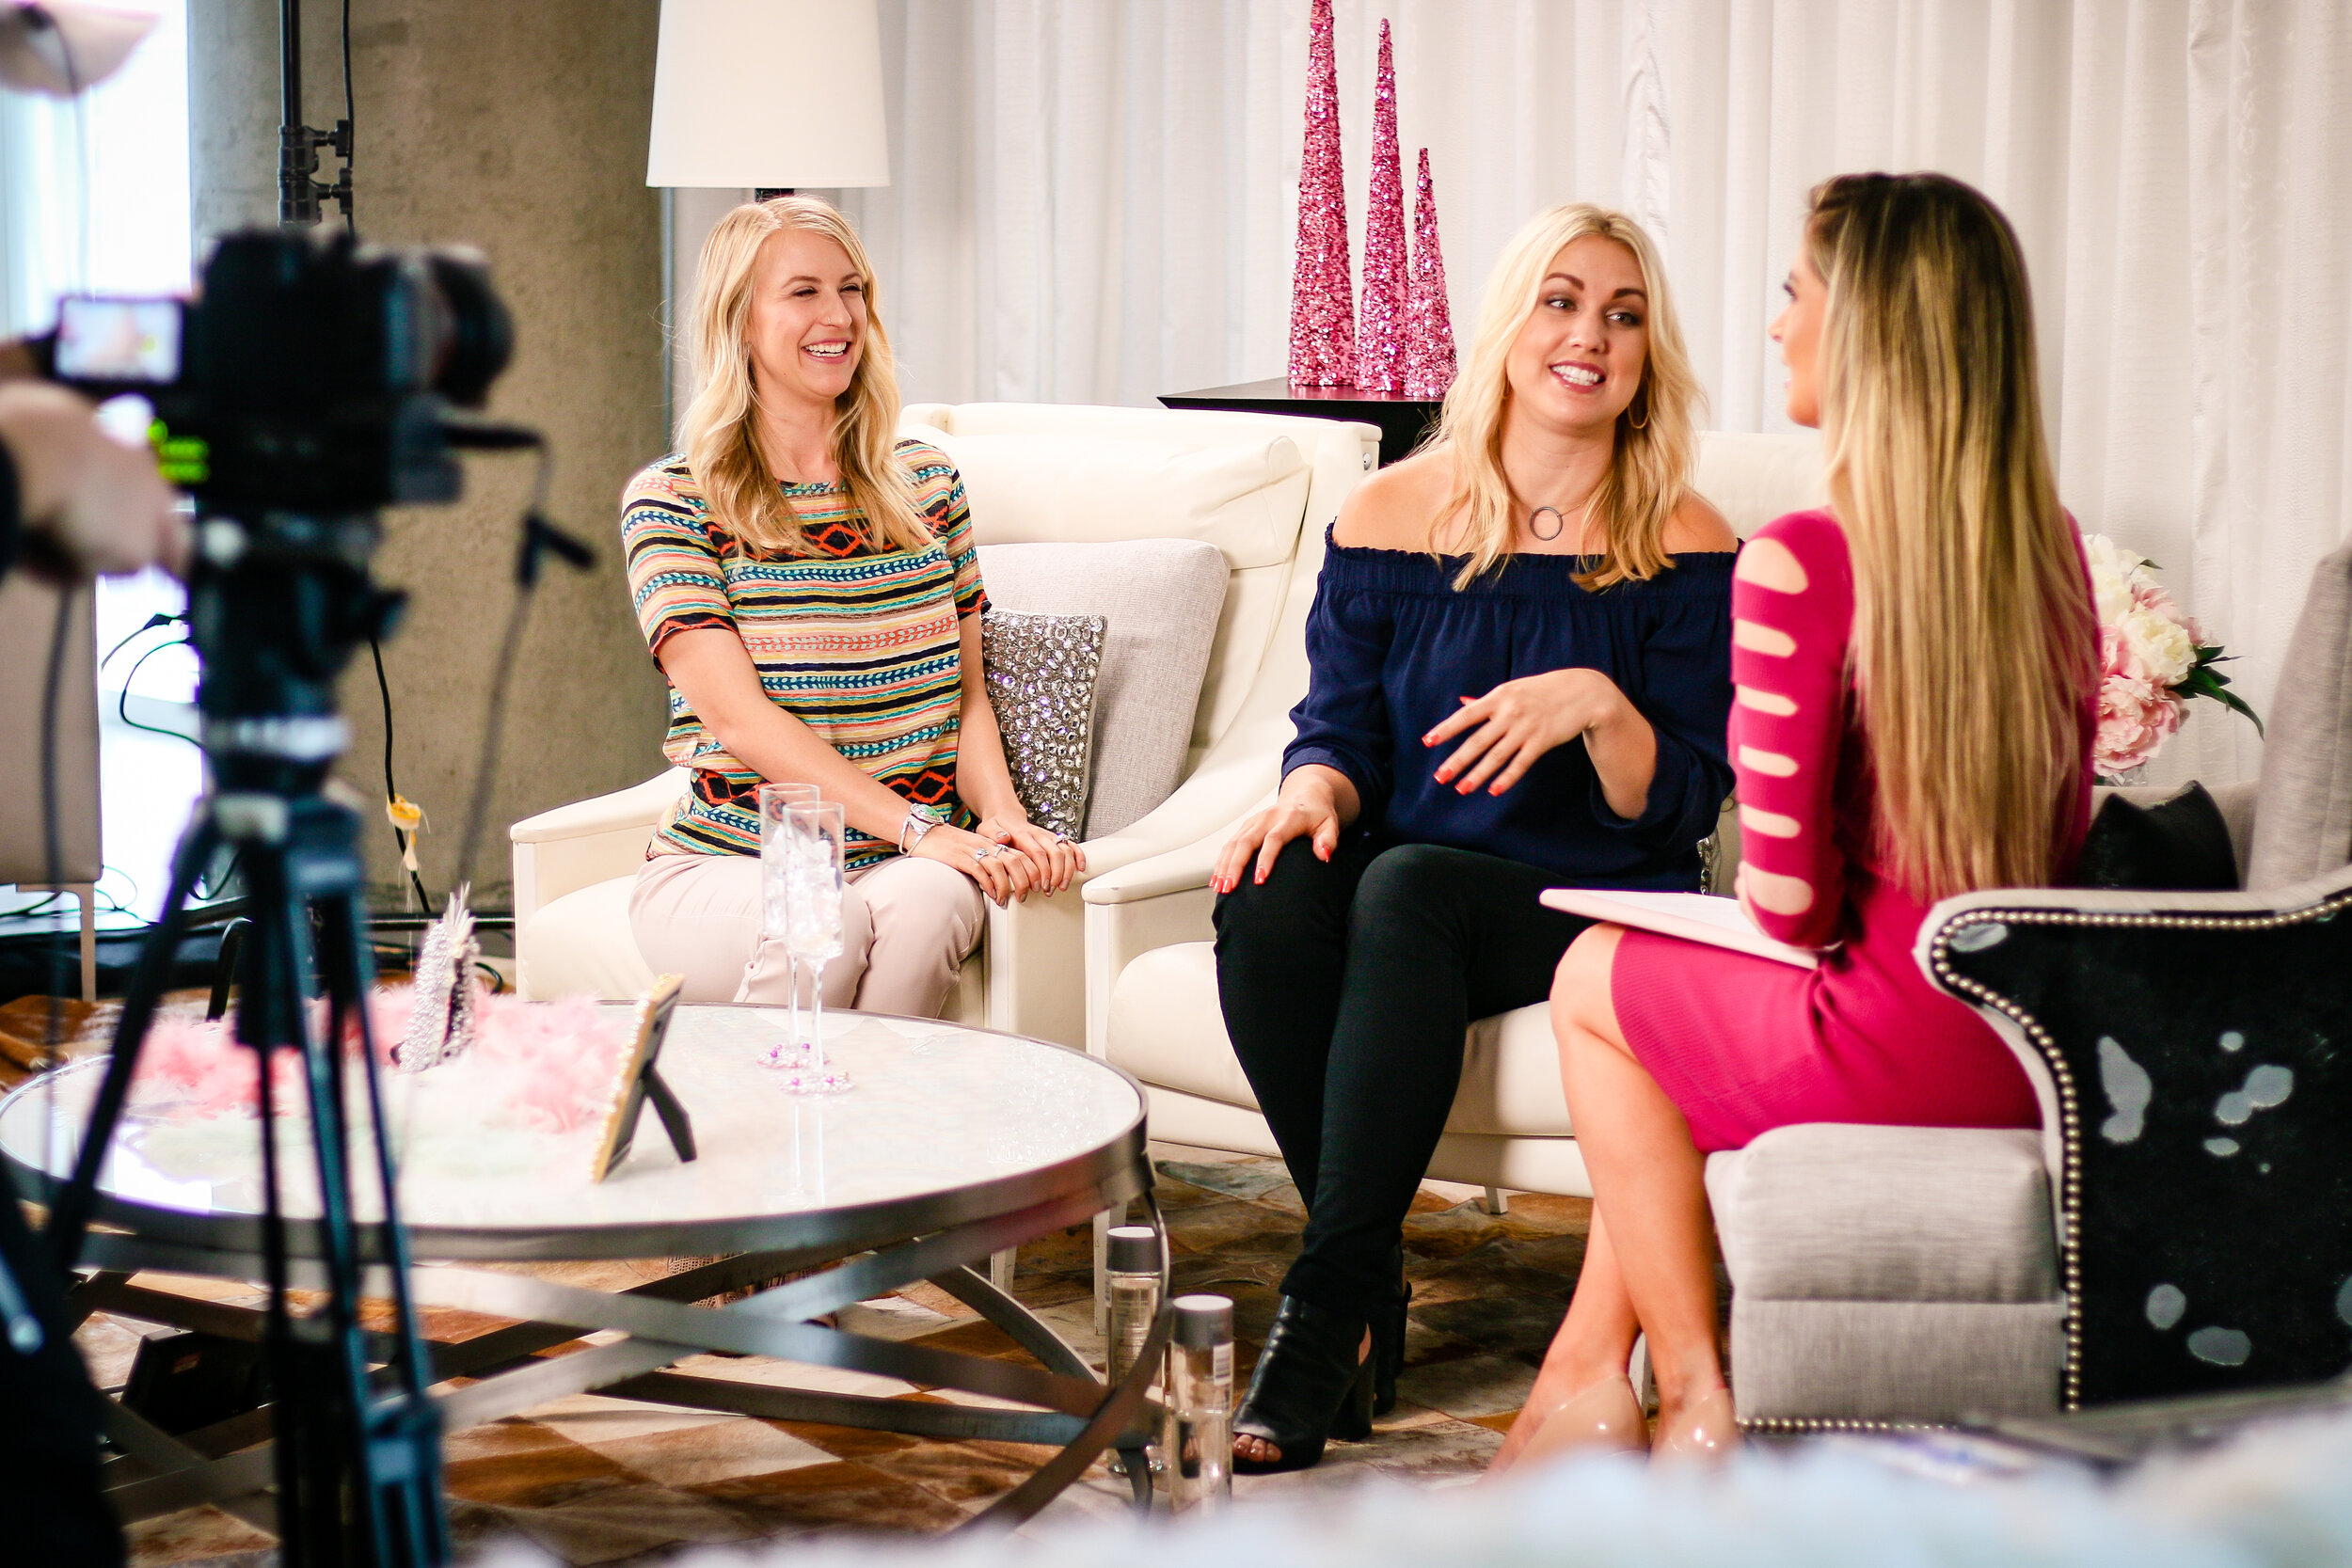 Pictured:  Jacy and Julianne, licensed Professional Counselors, and the creators of  The Everyday Therapy Podcast  on-set at The W Hotel